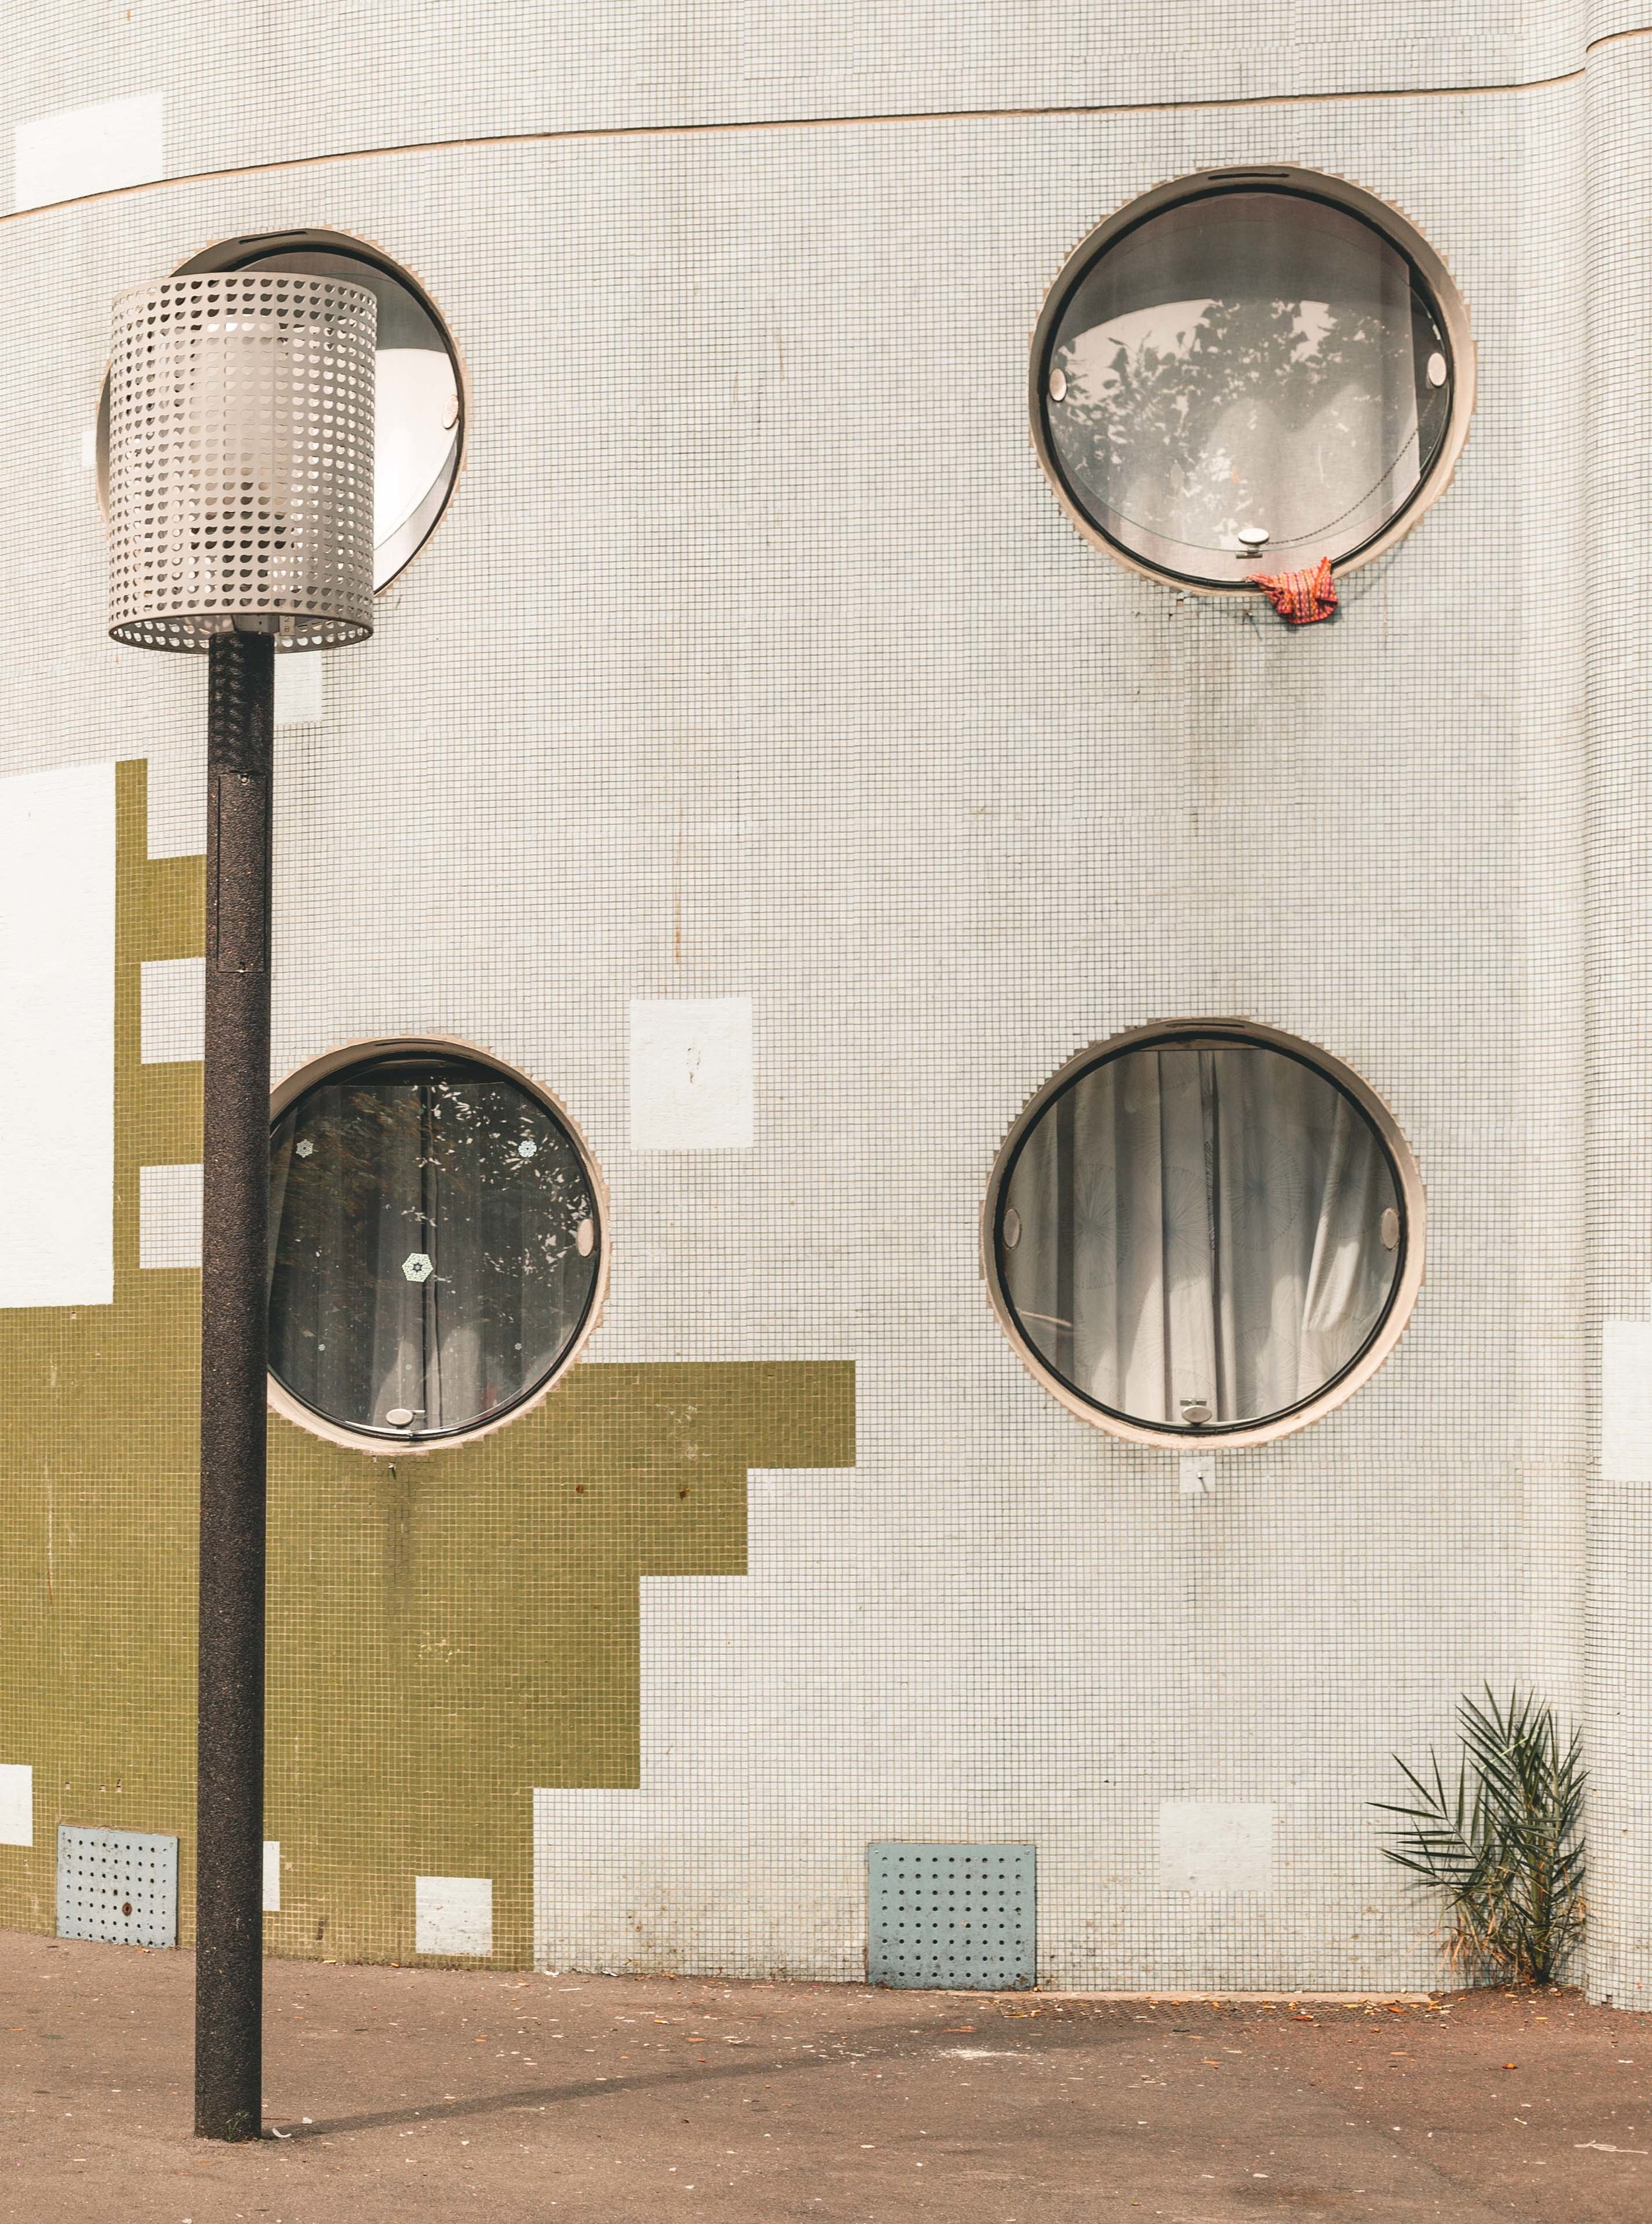 Architecture photograph detail series of Windows of the Tours Aillaud, Nanterre. Circular openings, with mosaic tile frontage. By Daniel Walker Photography